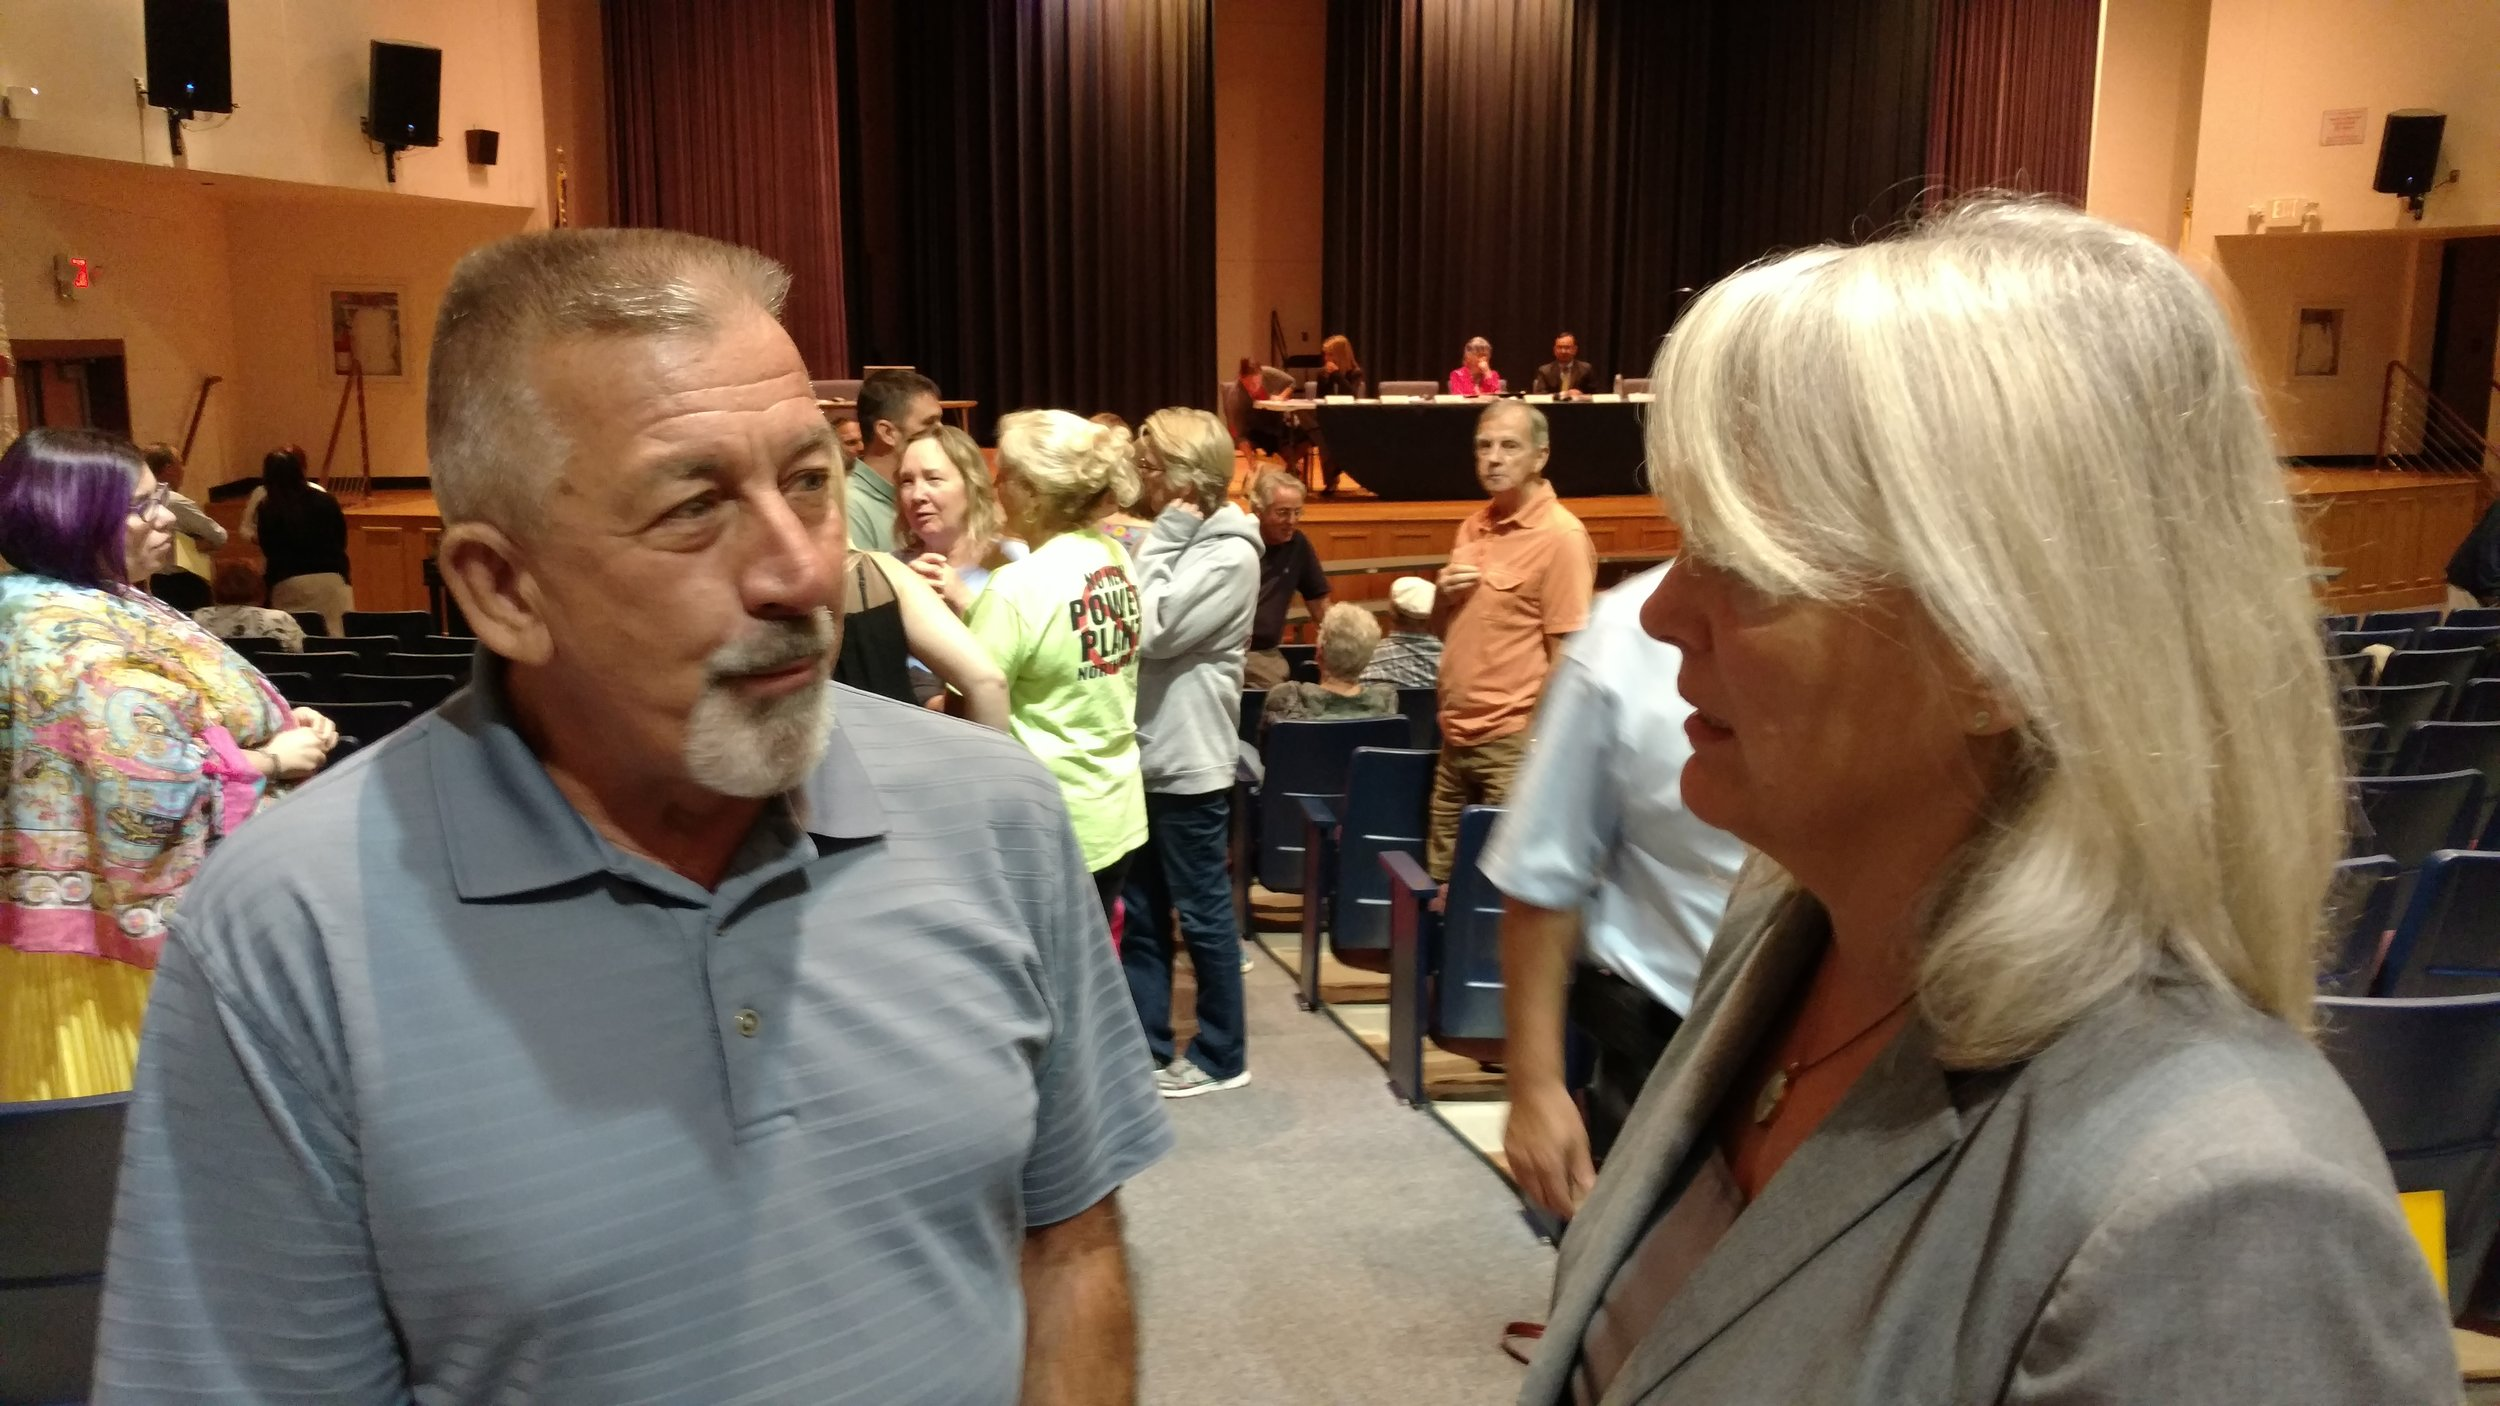 Burrillville resident Paul Bolduc speaks with Janet Coit of the Rhode Island Energy Facility Siting Board during a Sept. 21 public hearing. (Tim Faulkner/ecoRI News)